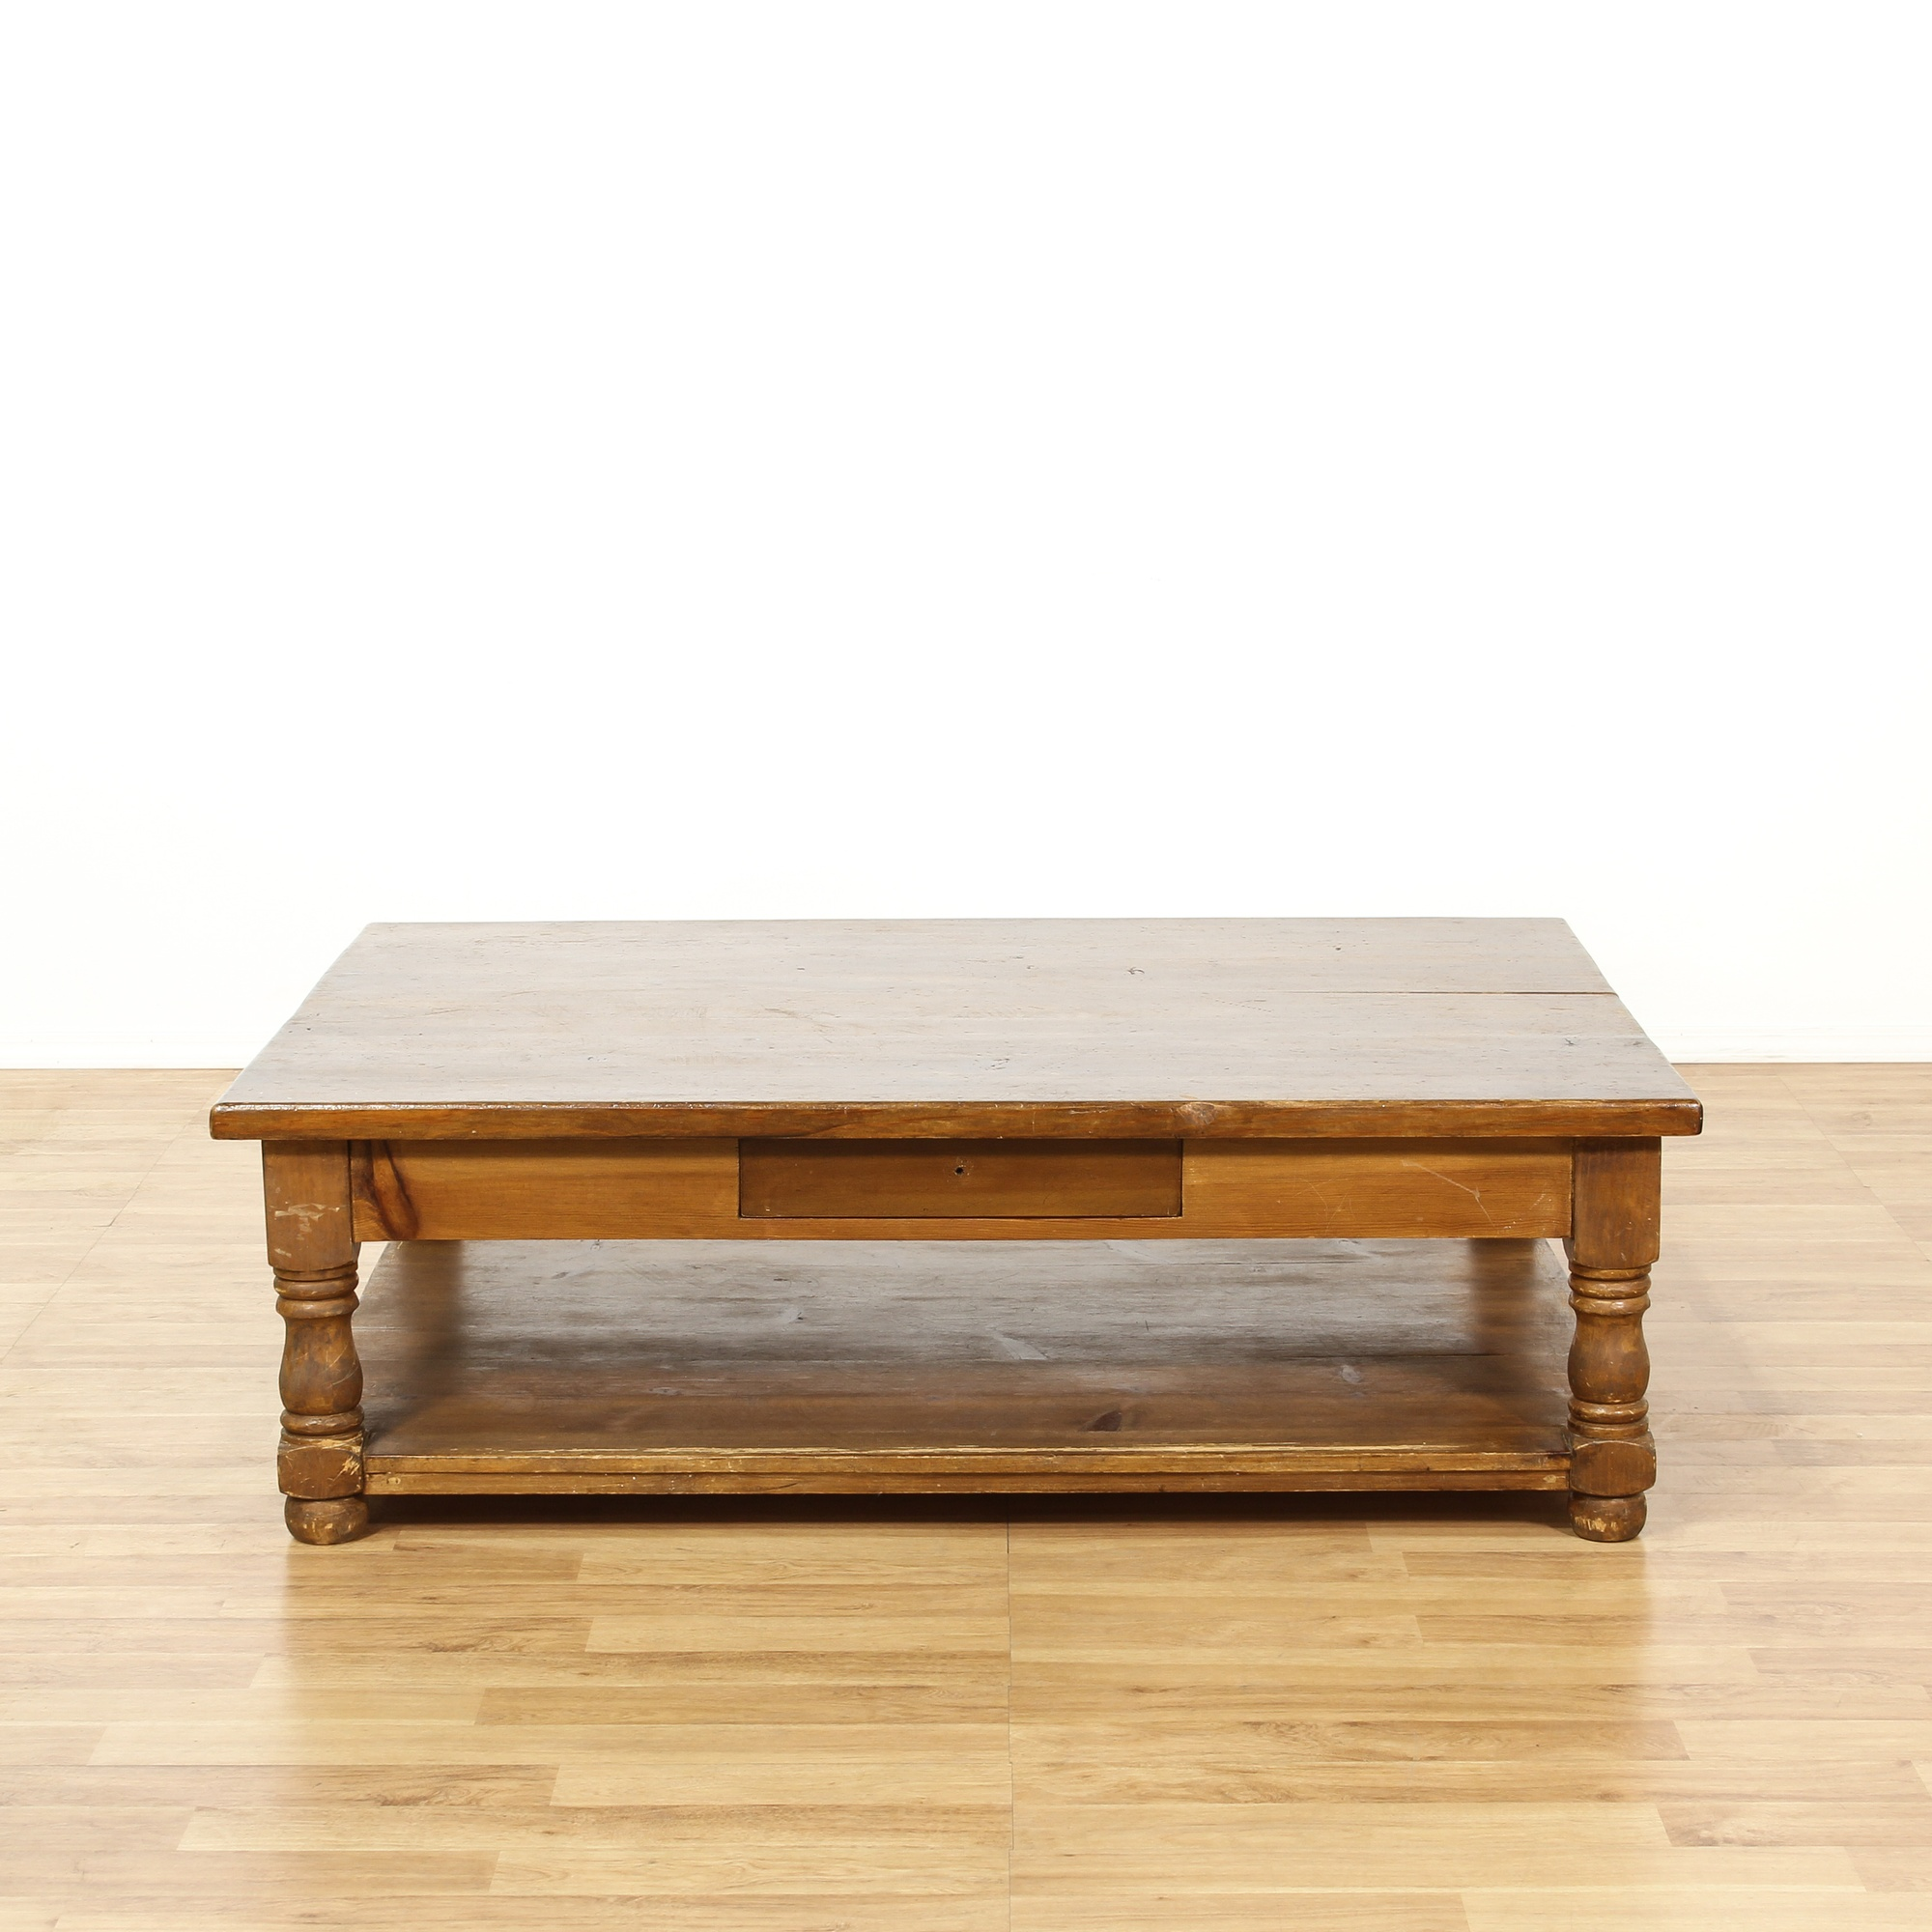 Rustic Pine Wood Coffee Table: Large Rustic Pine Tiered Coffee Table